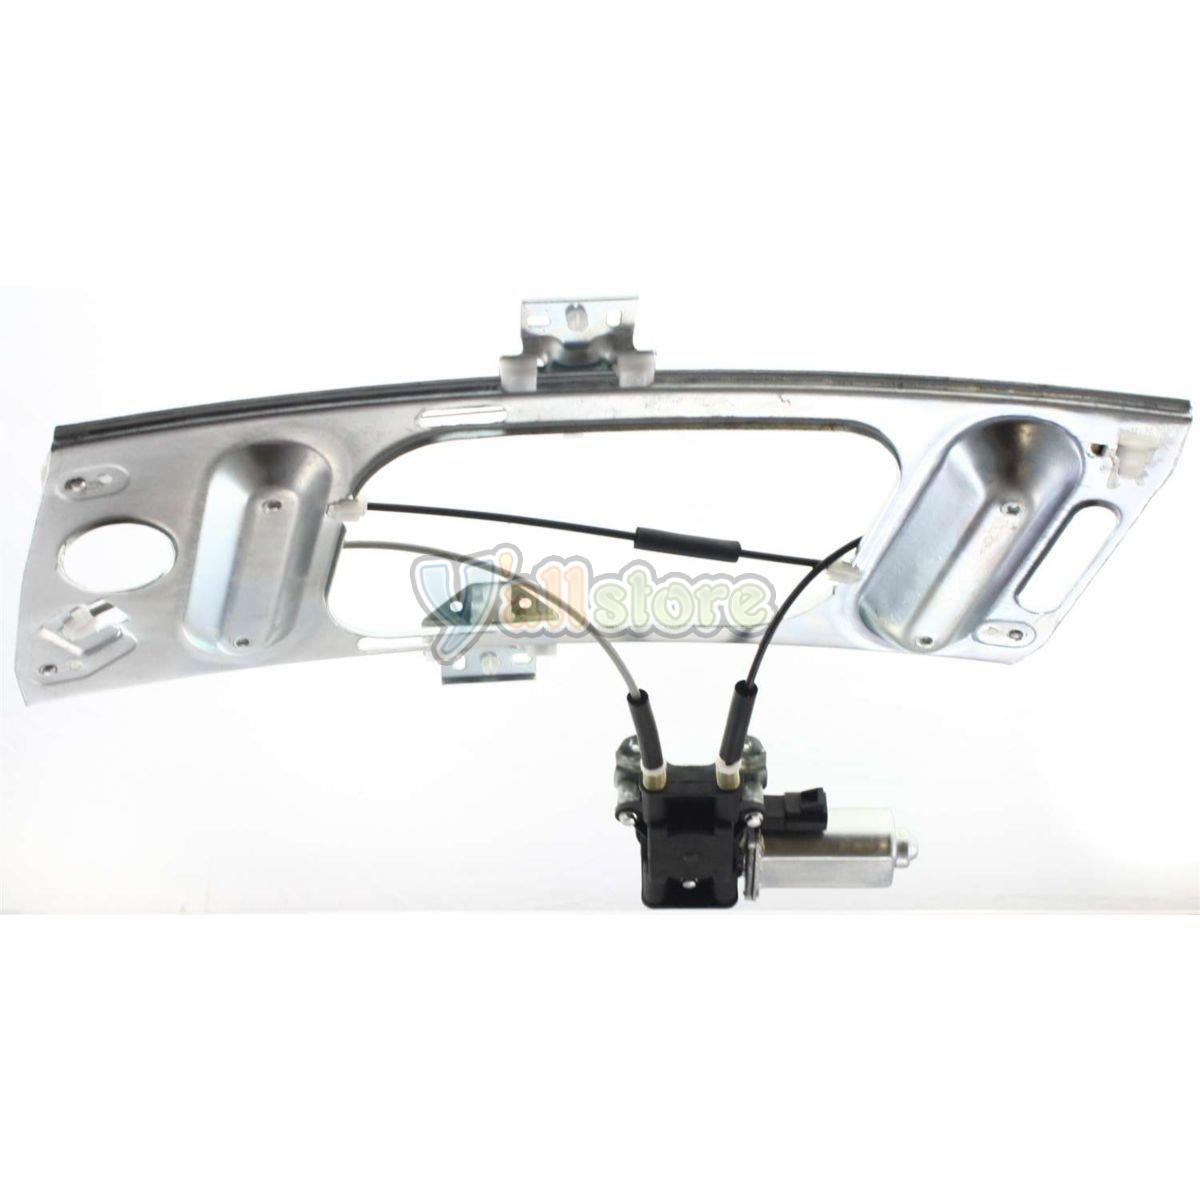 hight resolution of front driver side power window regulator with motor for chevy monte carlo 00 07